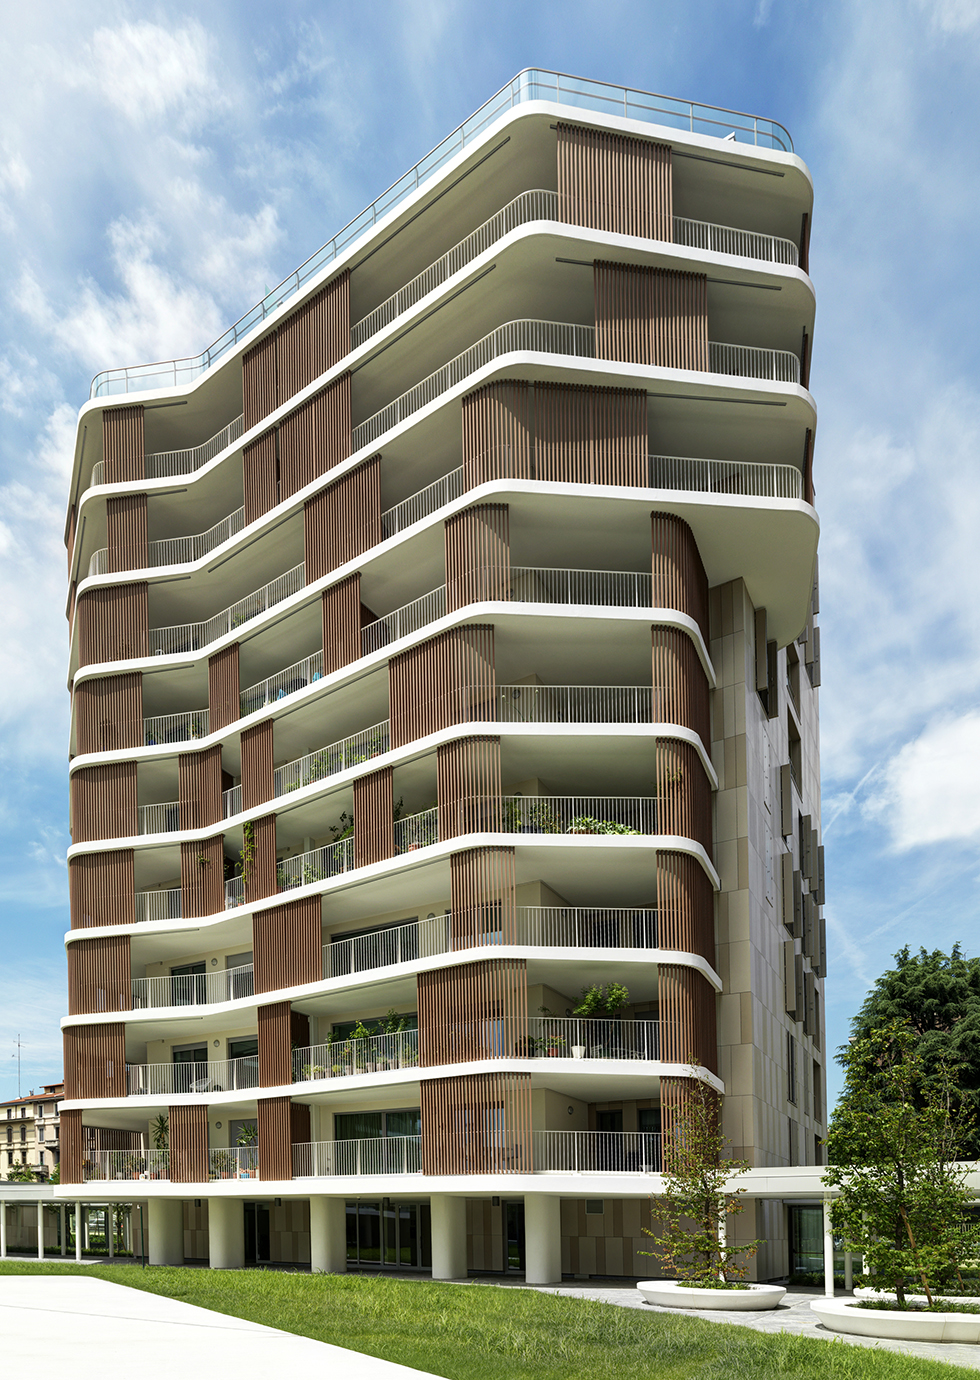 Via piranesi 44 residential towers milan italy mab for Apartment design italien